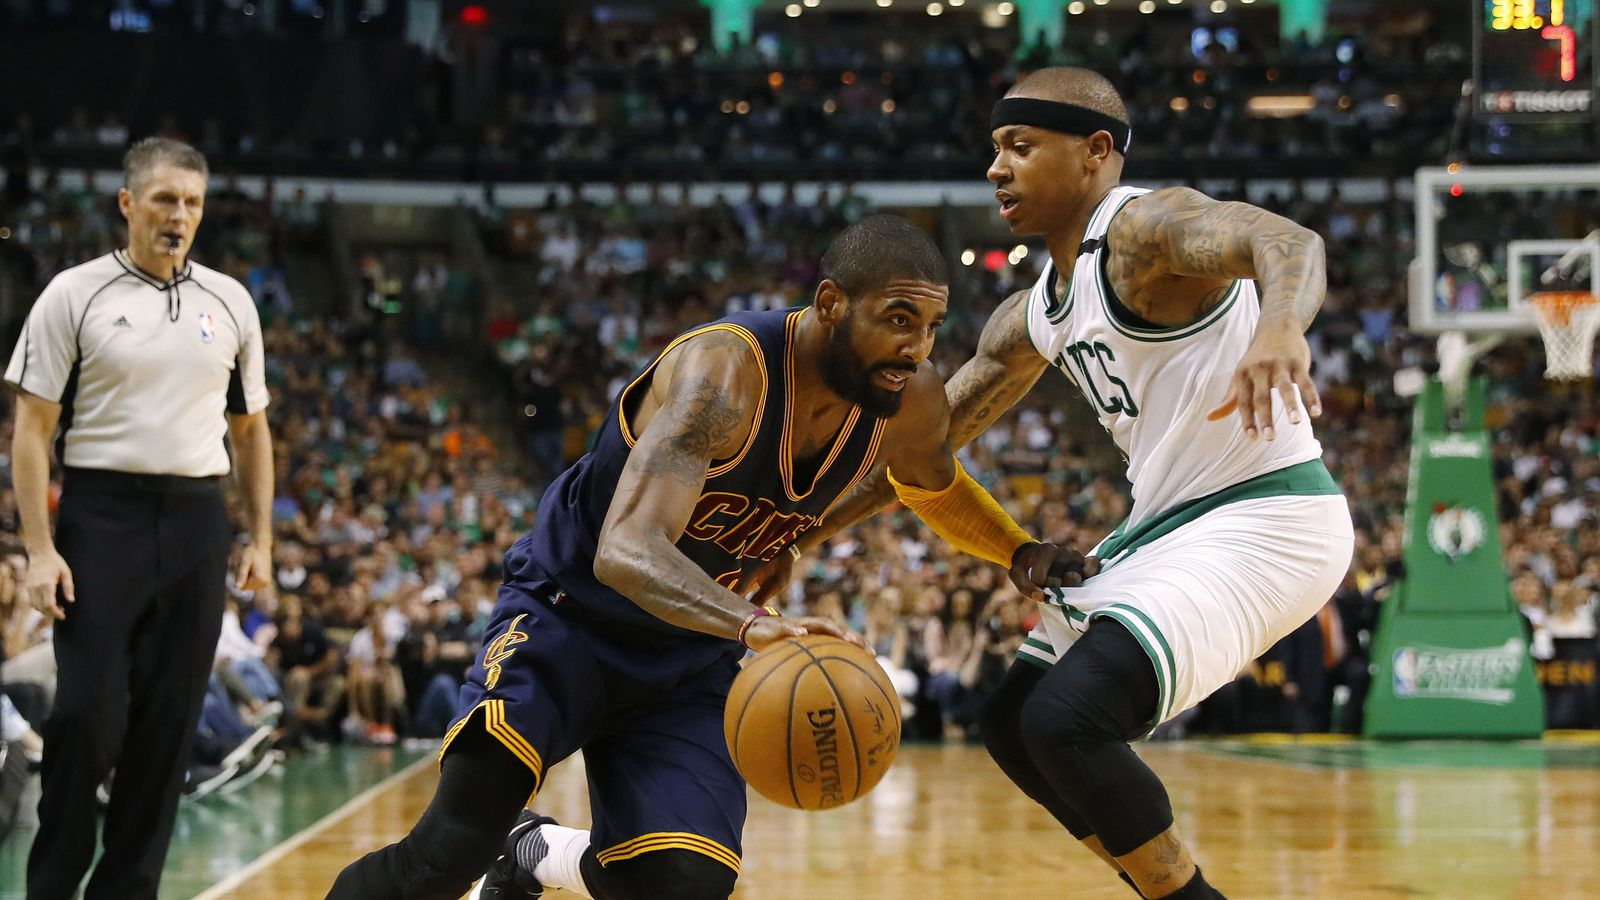 Kyrie-Isaiah trade went from ?in discussion? to reality very quickly